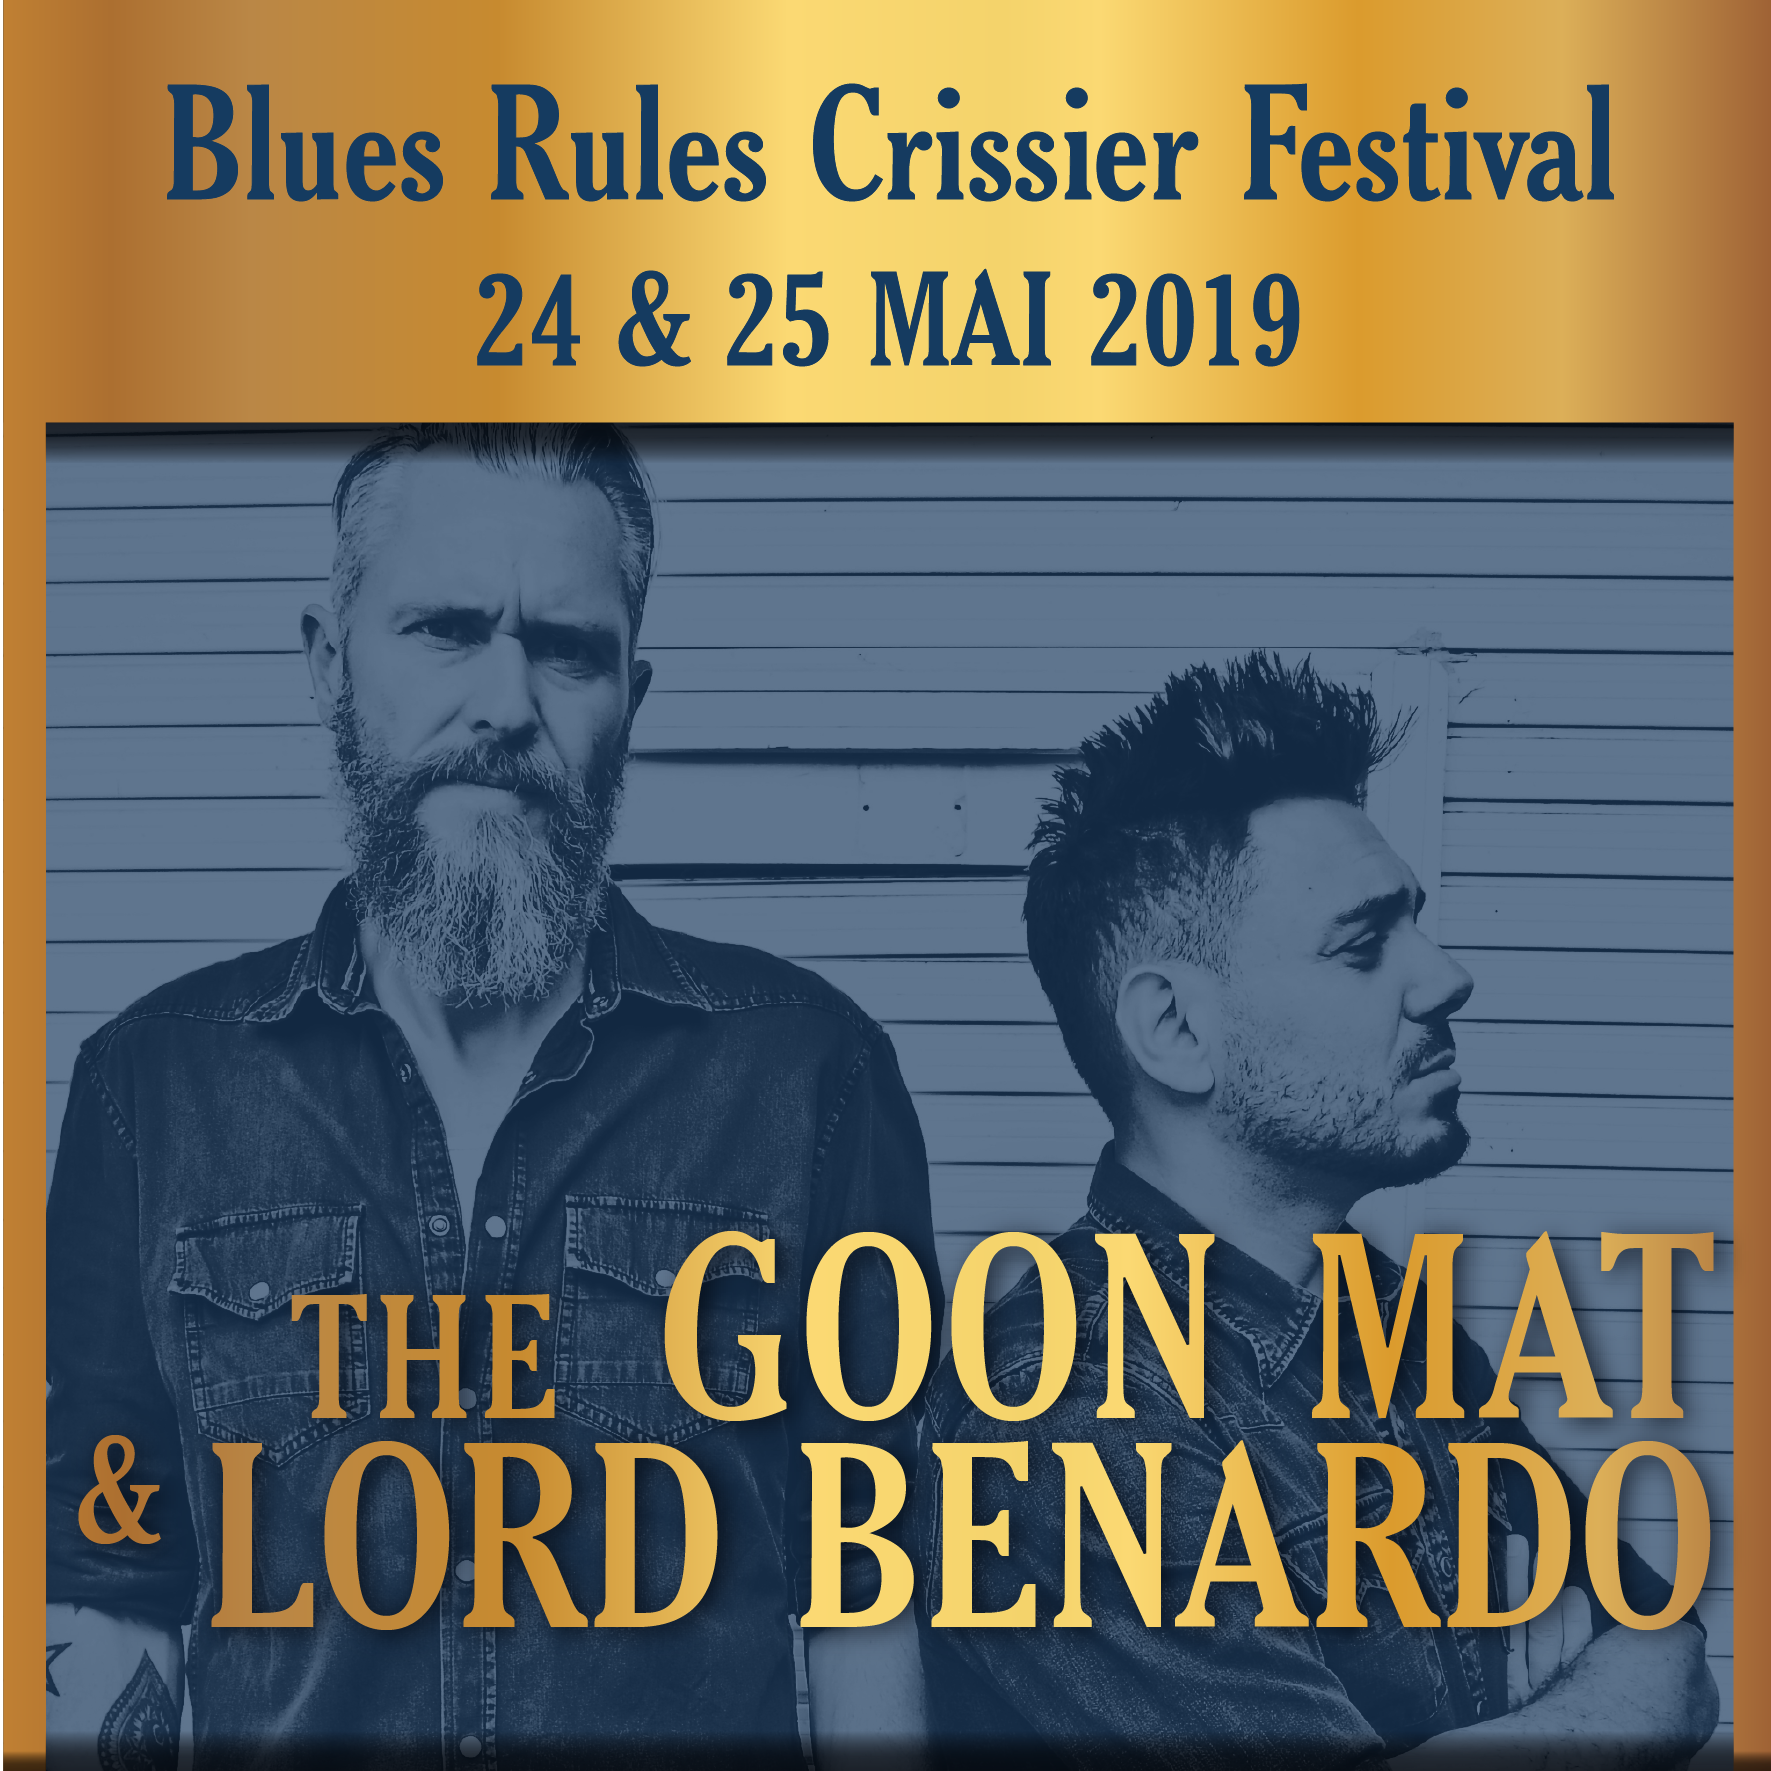 The Goon Mat & Lord Benardo @ blues rules